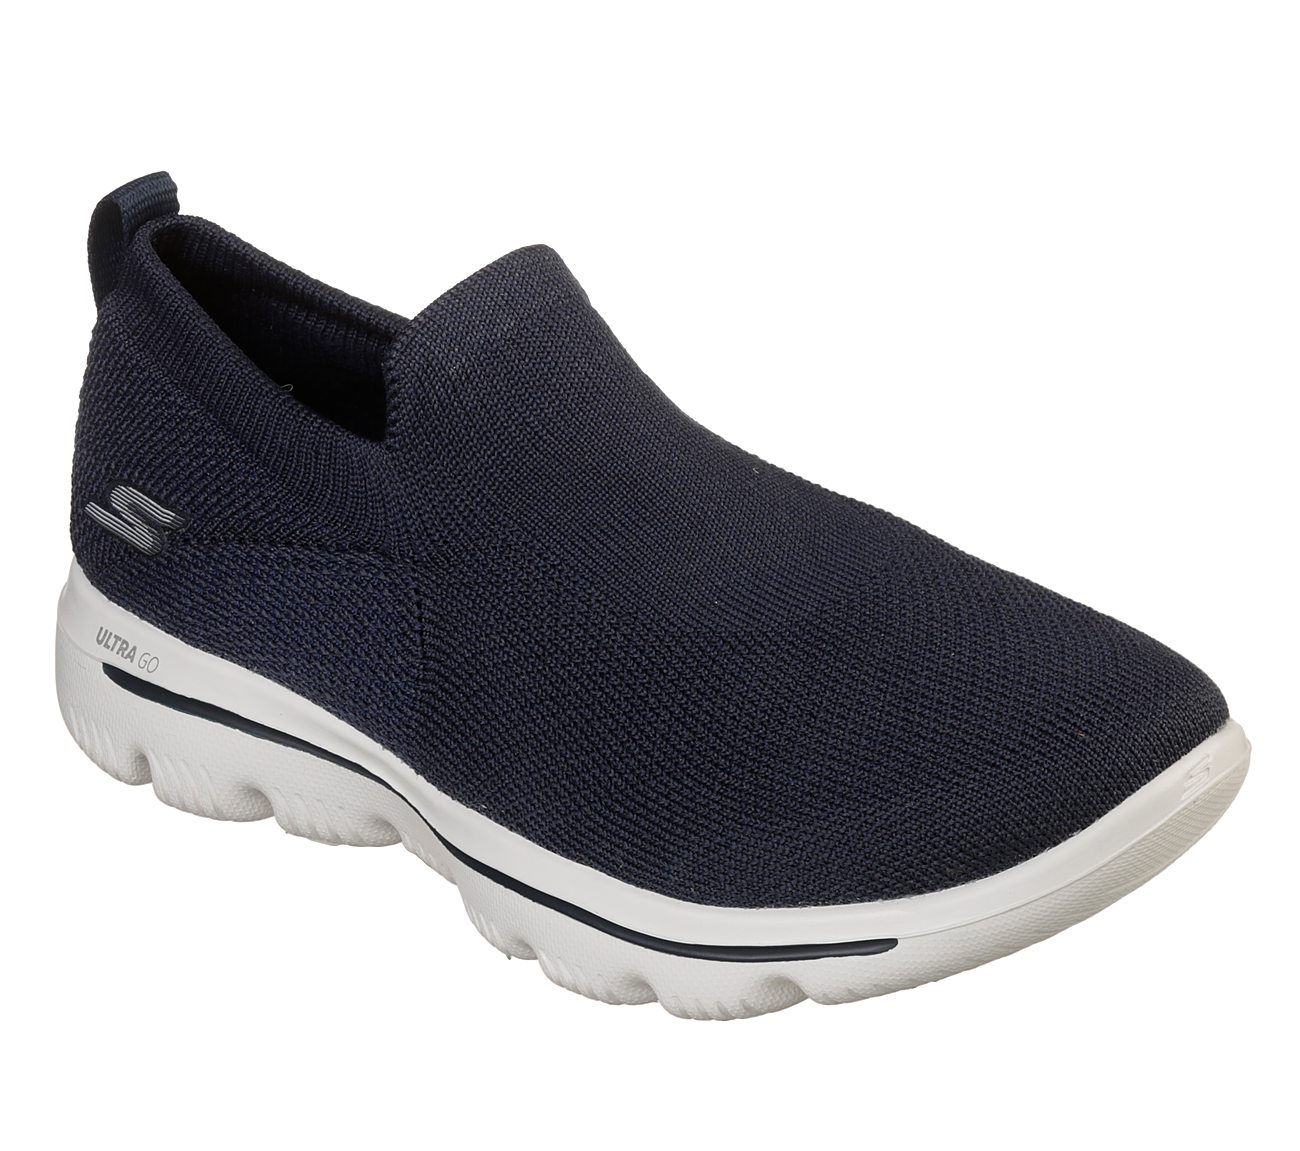 Buy Skechers Skechers Gowalk Evolution Ultra Skechers